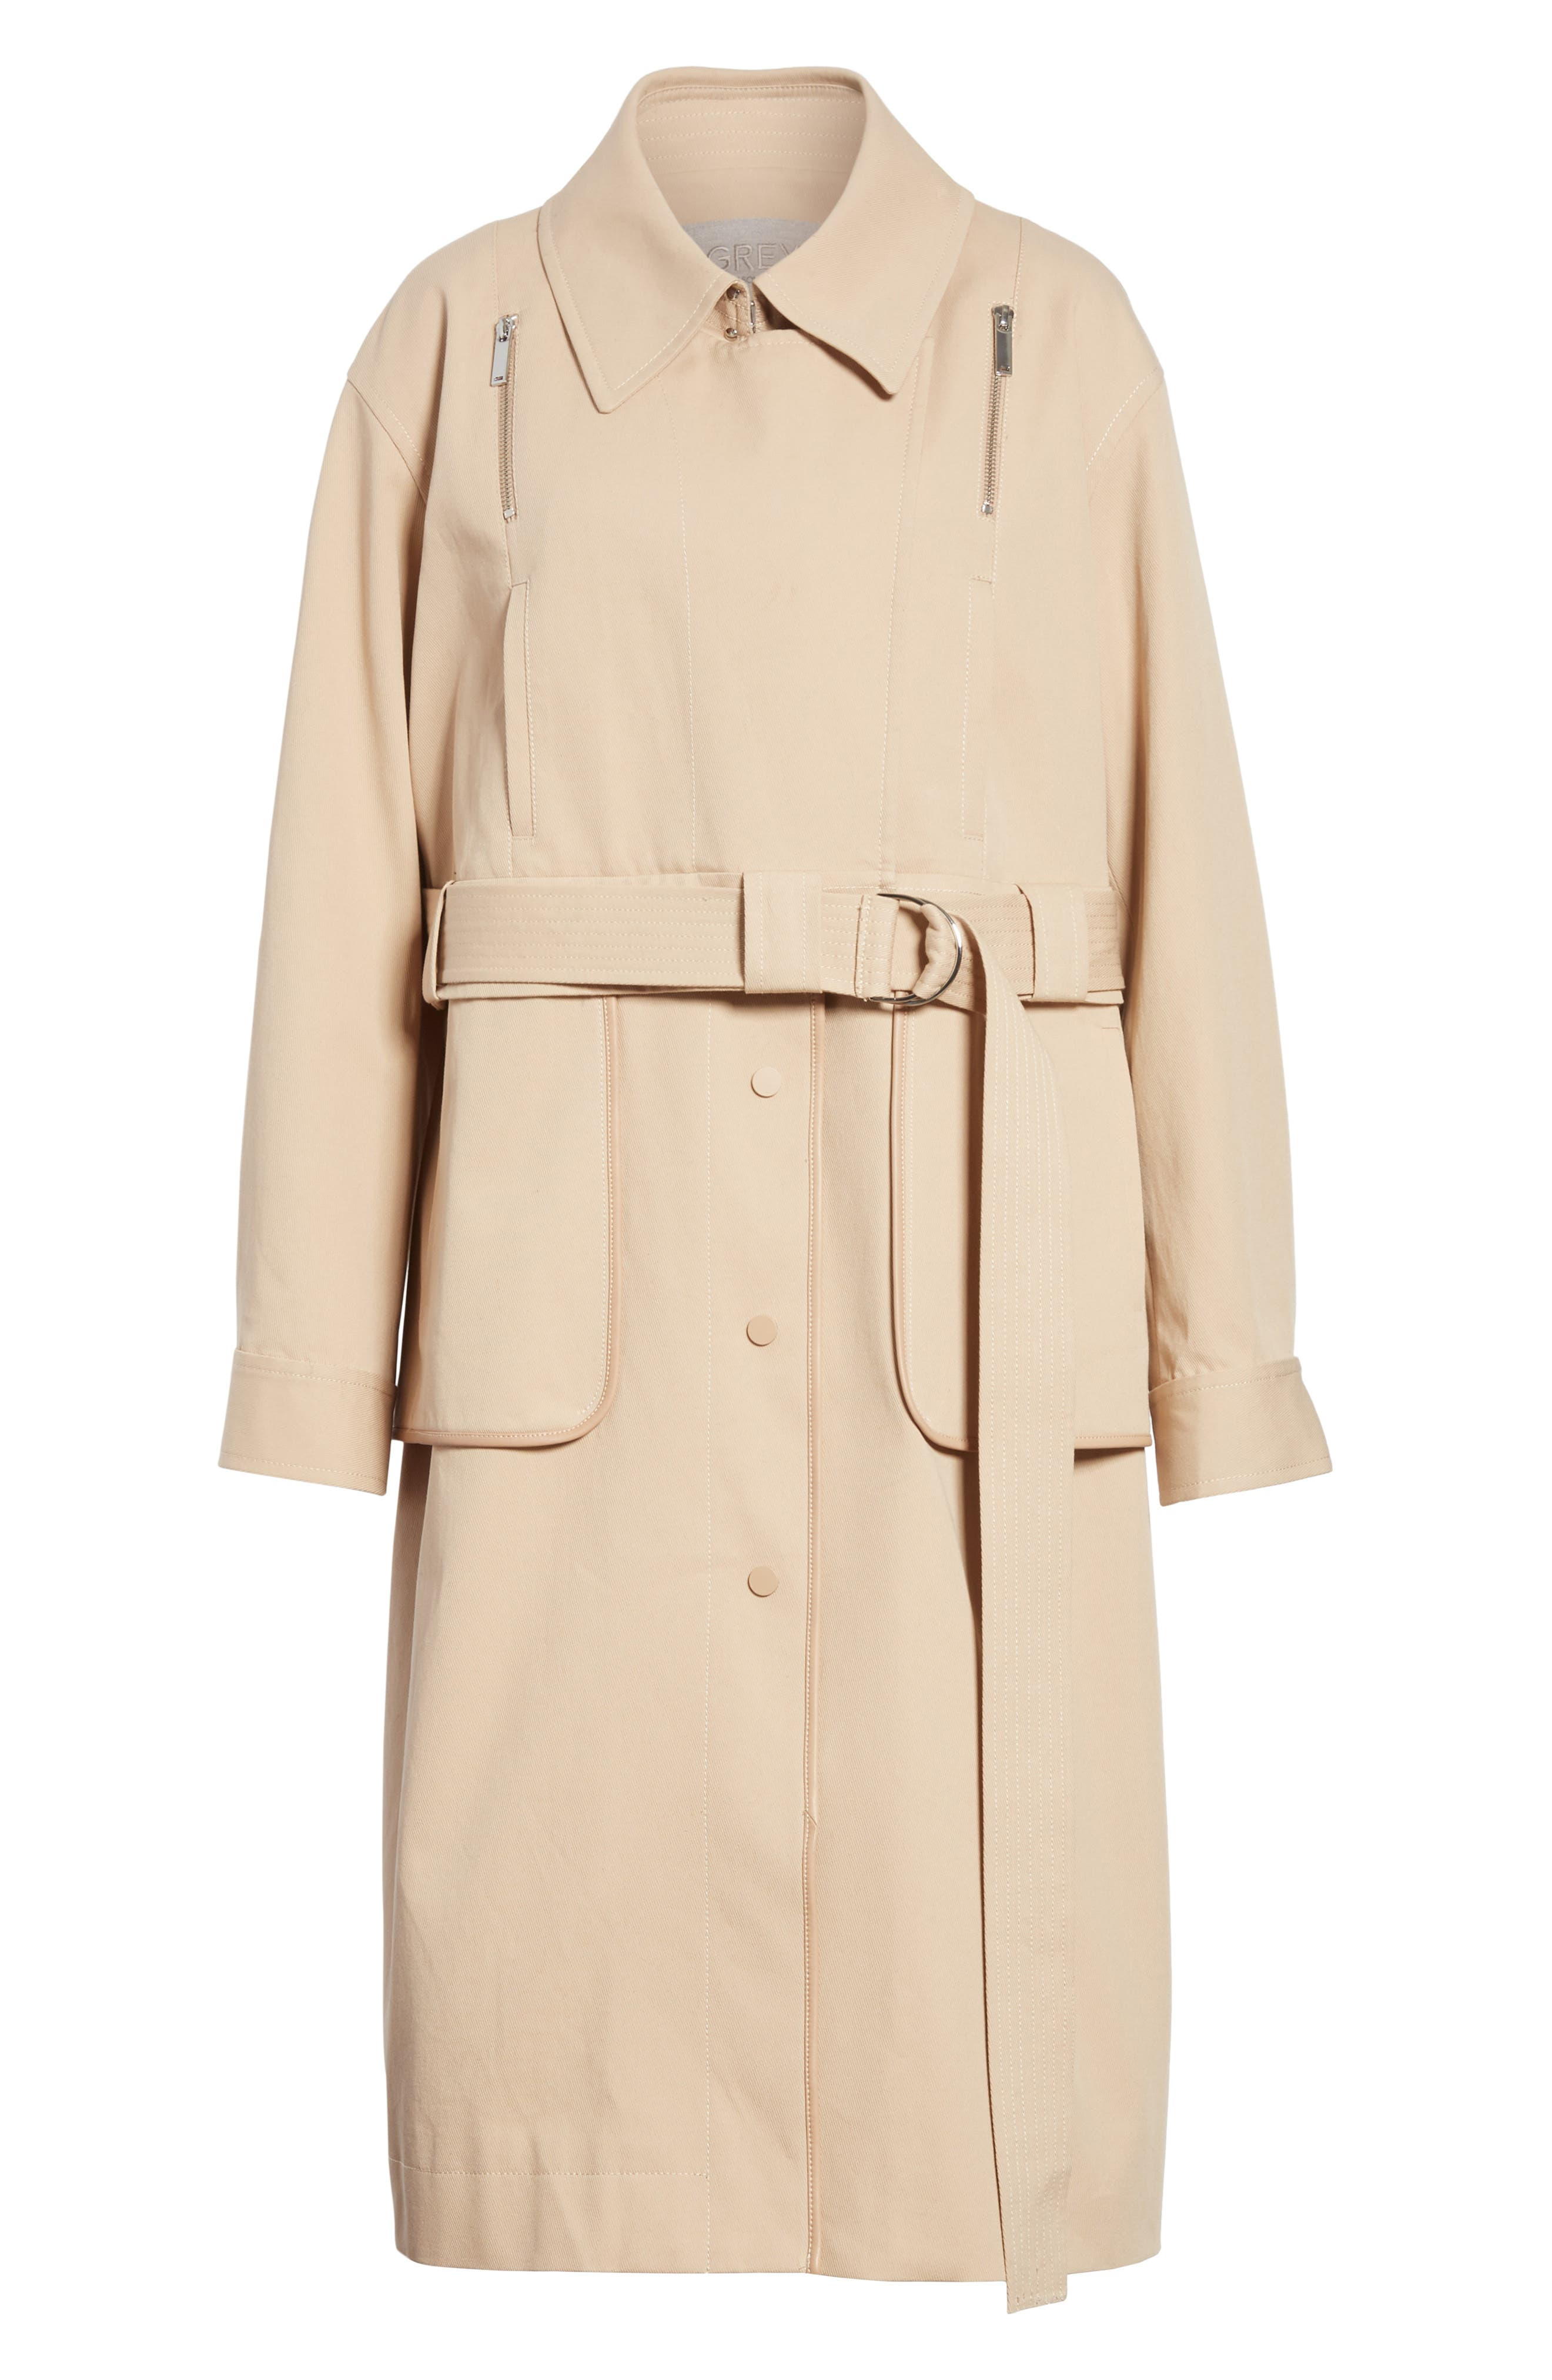 Sailor Stretch Twill Convertible Trench Coat,                             Alternate thumbnail 6, color,                             FAWN